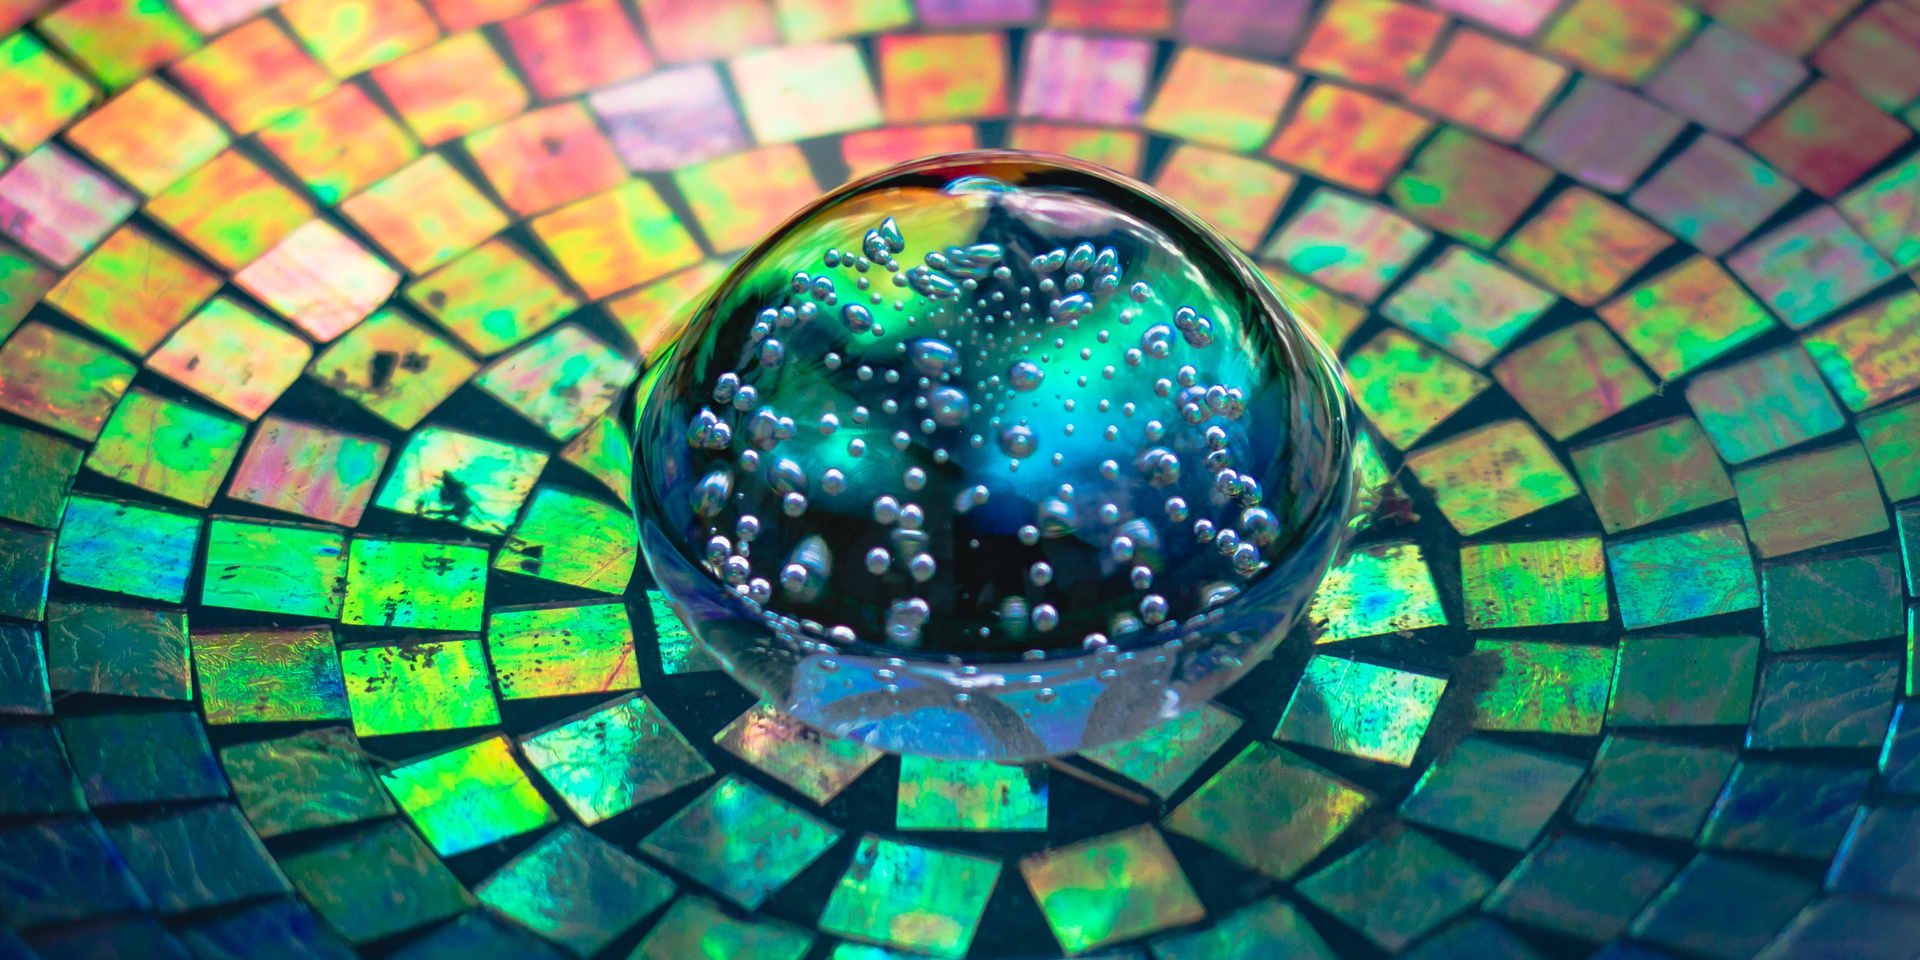 crystal-glass-on-a-colorful-background-2